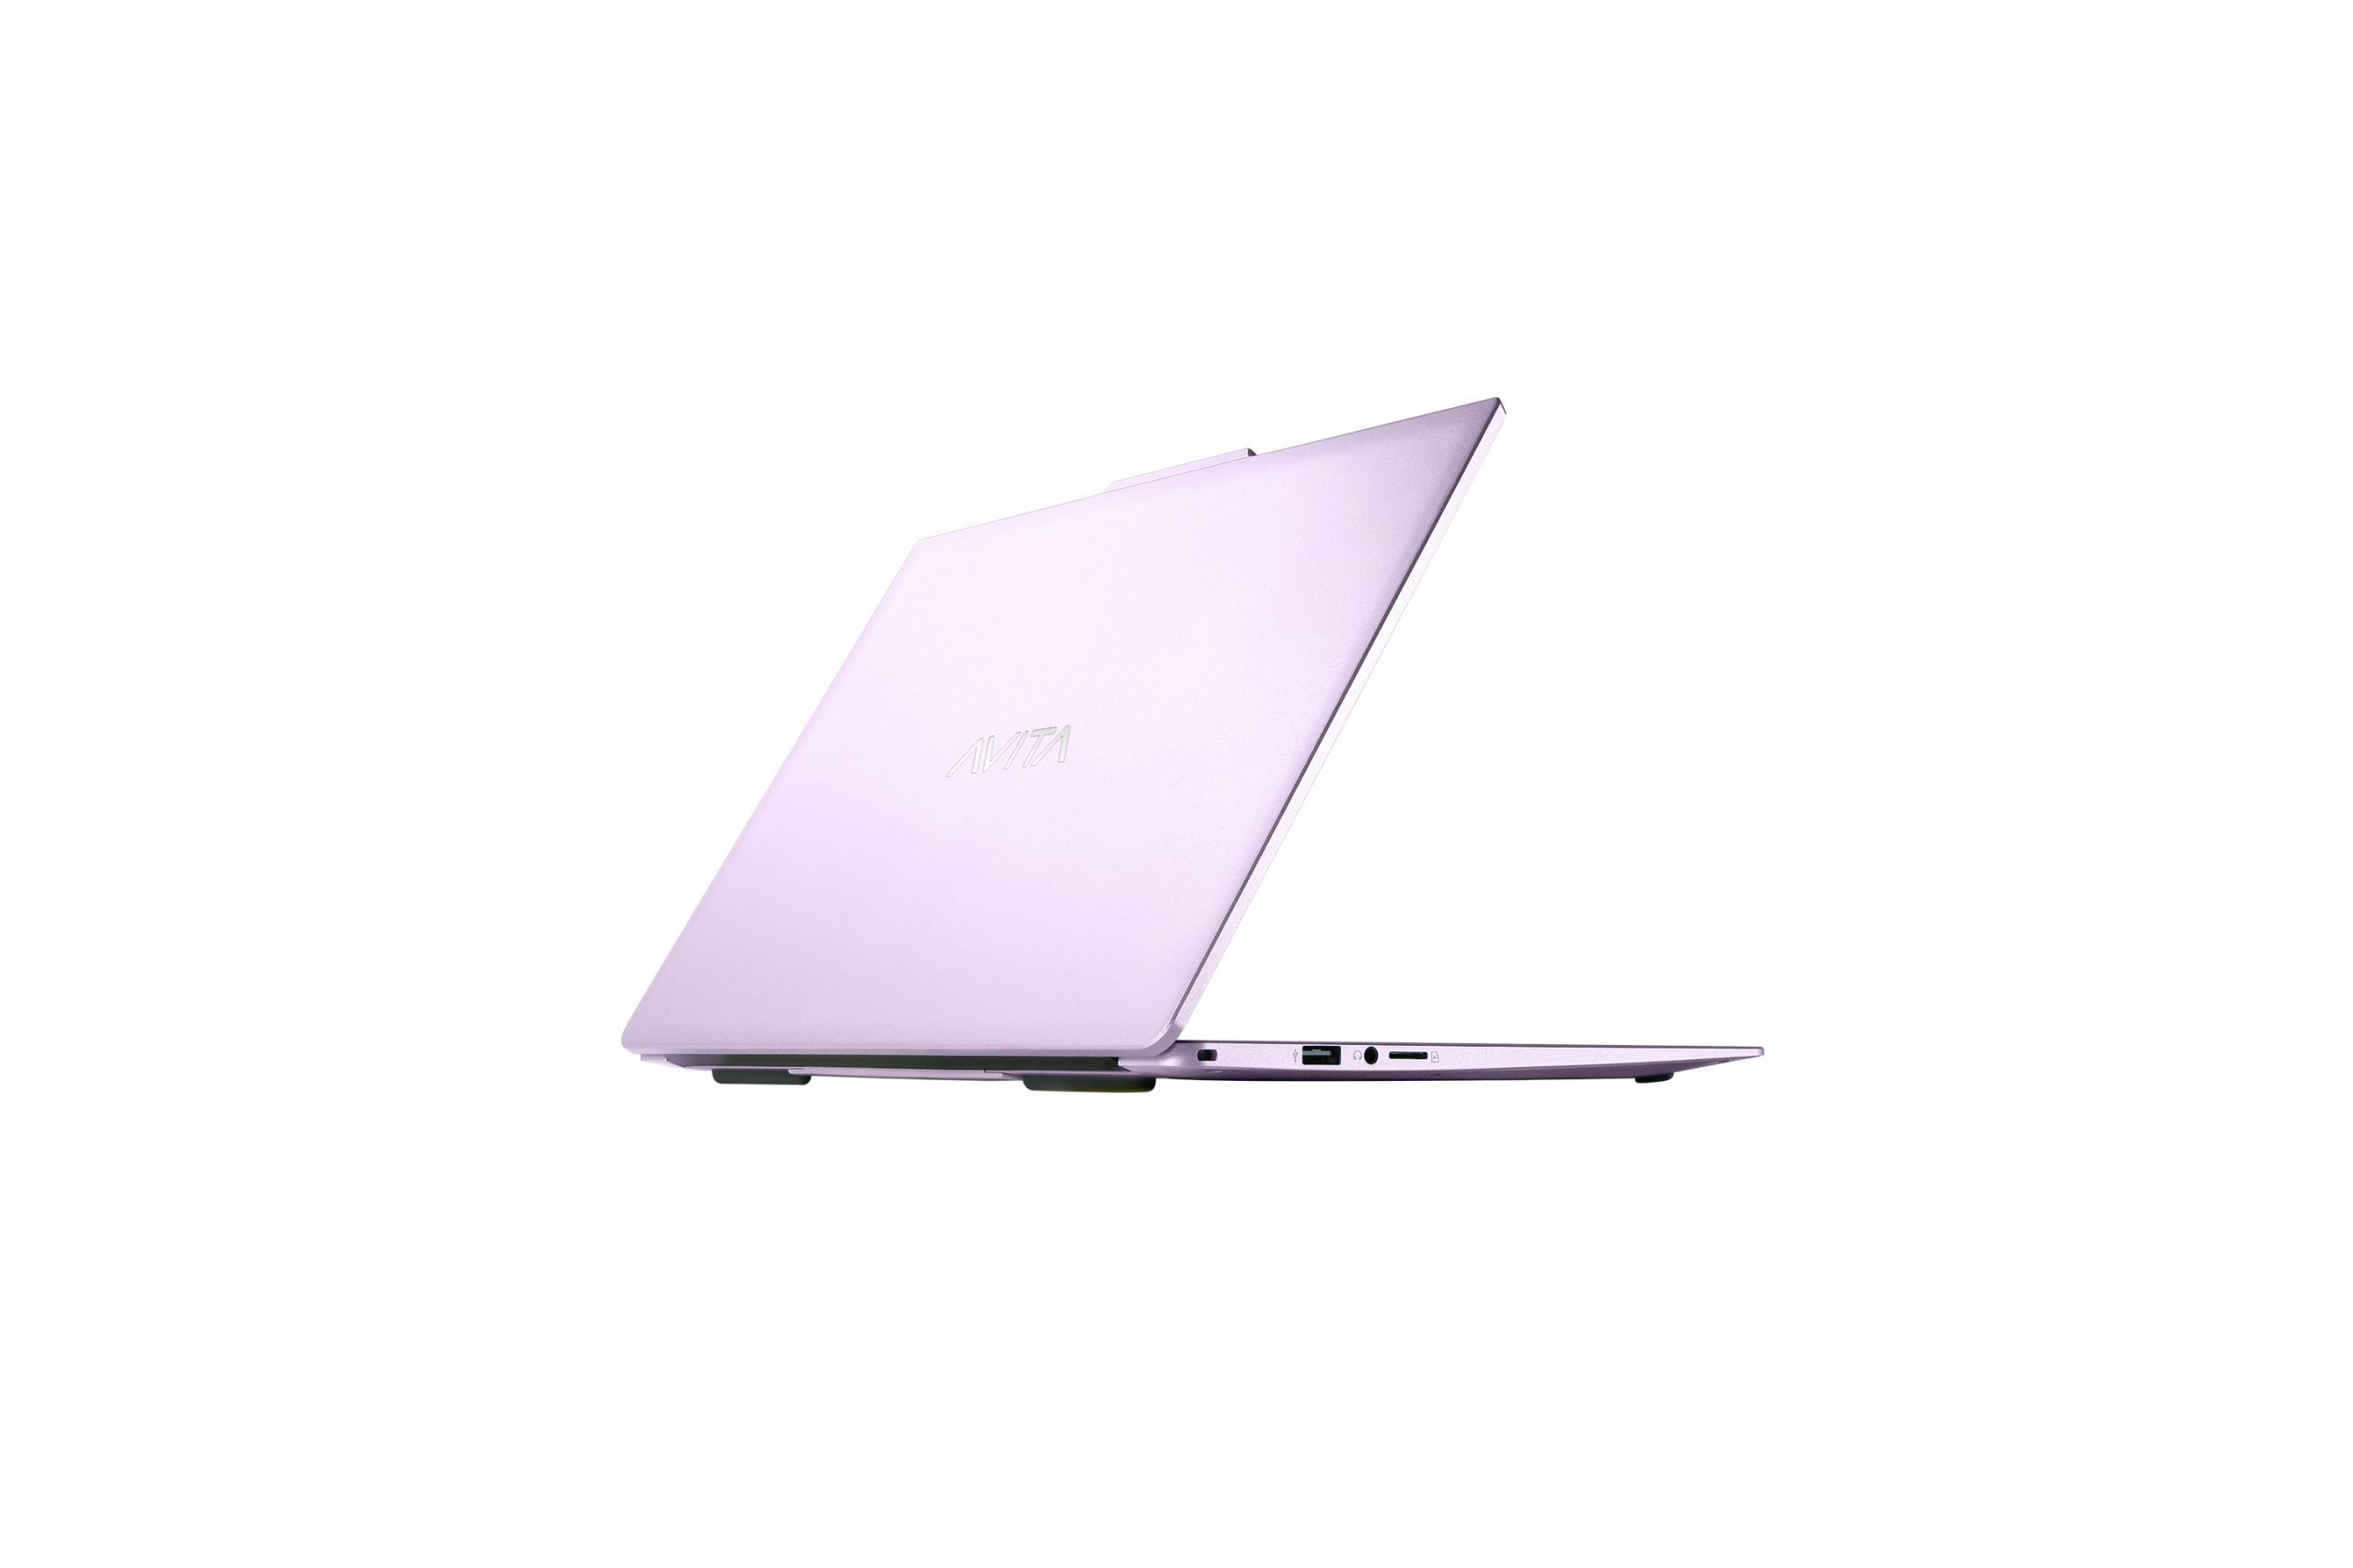 https://t2qwifi.com/wp-content/uploads/2020/07/avita_laptop_2020_angle2_0024_high_fragrant-lilac-scaled.jpg